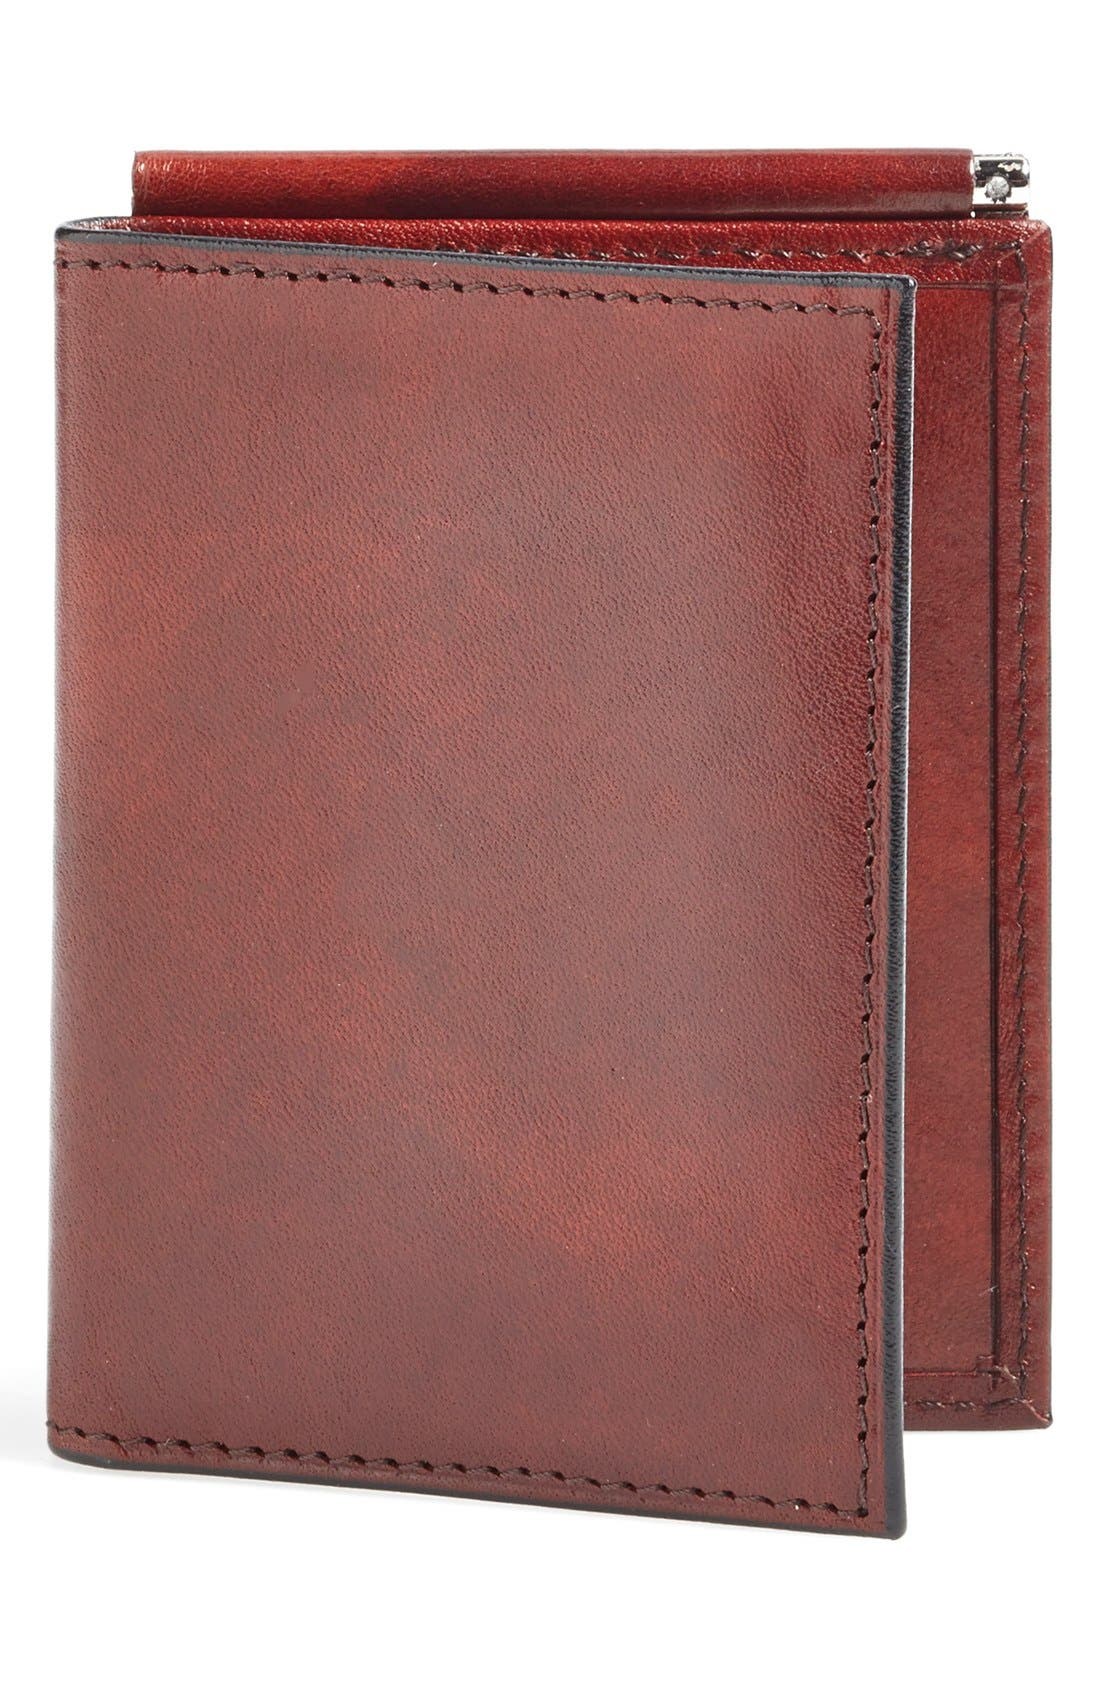 Alternate Image 1 Selected - Bosca 'Old Leather' Money Clip Wallet